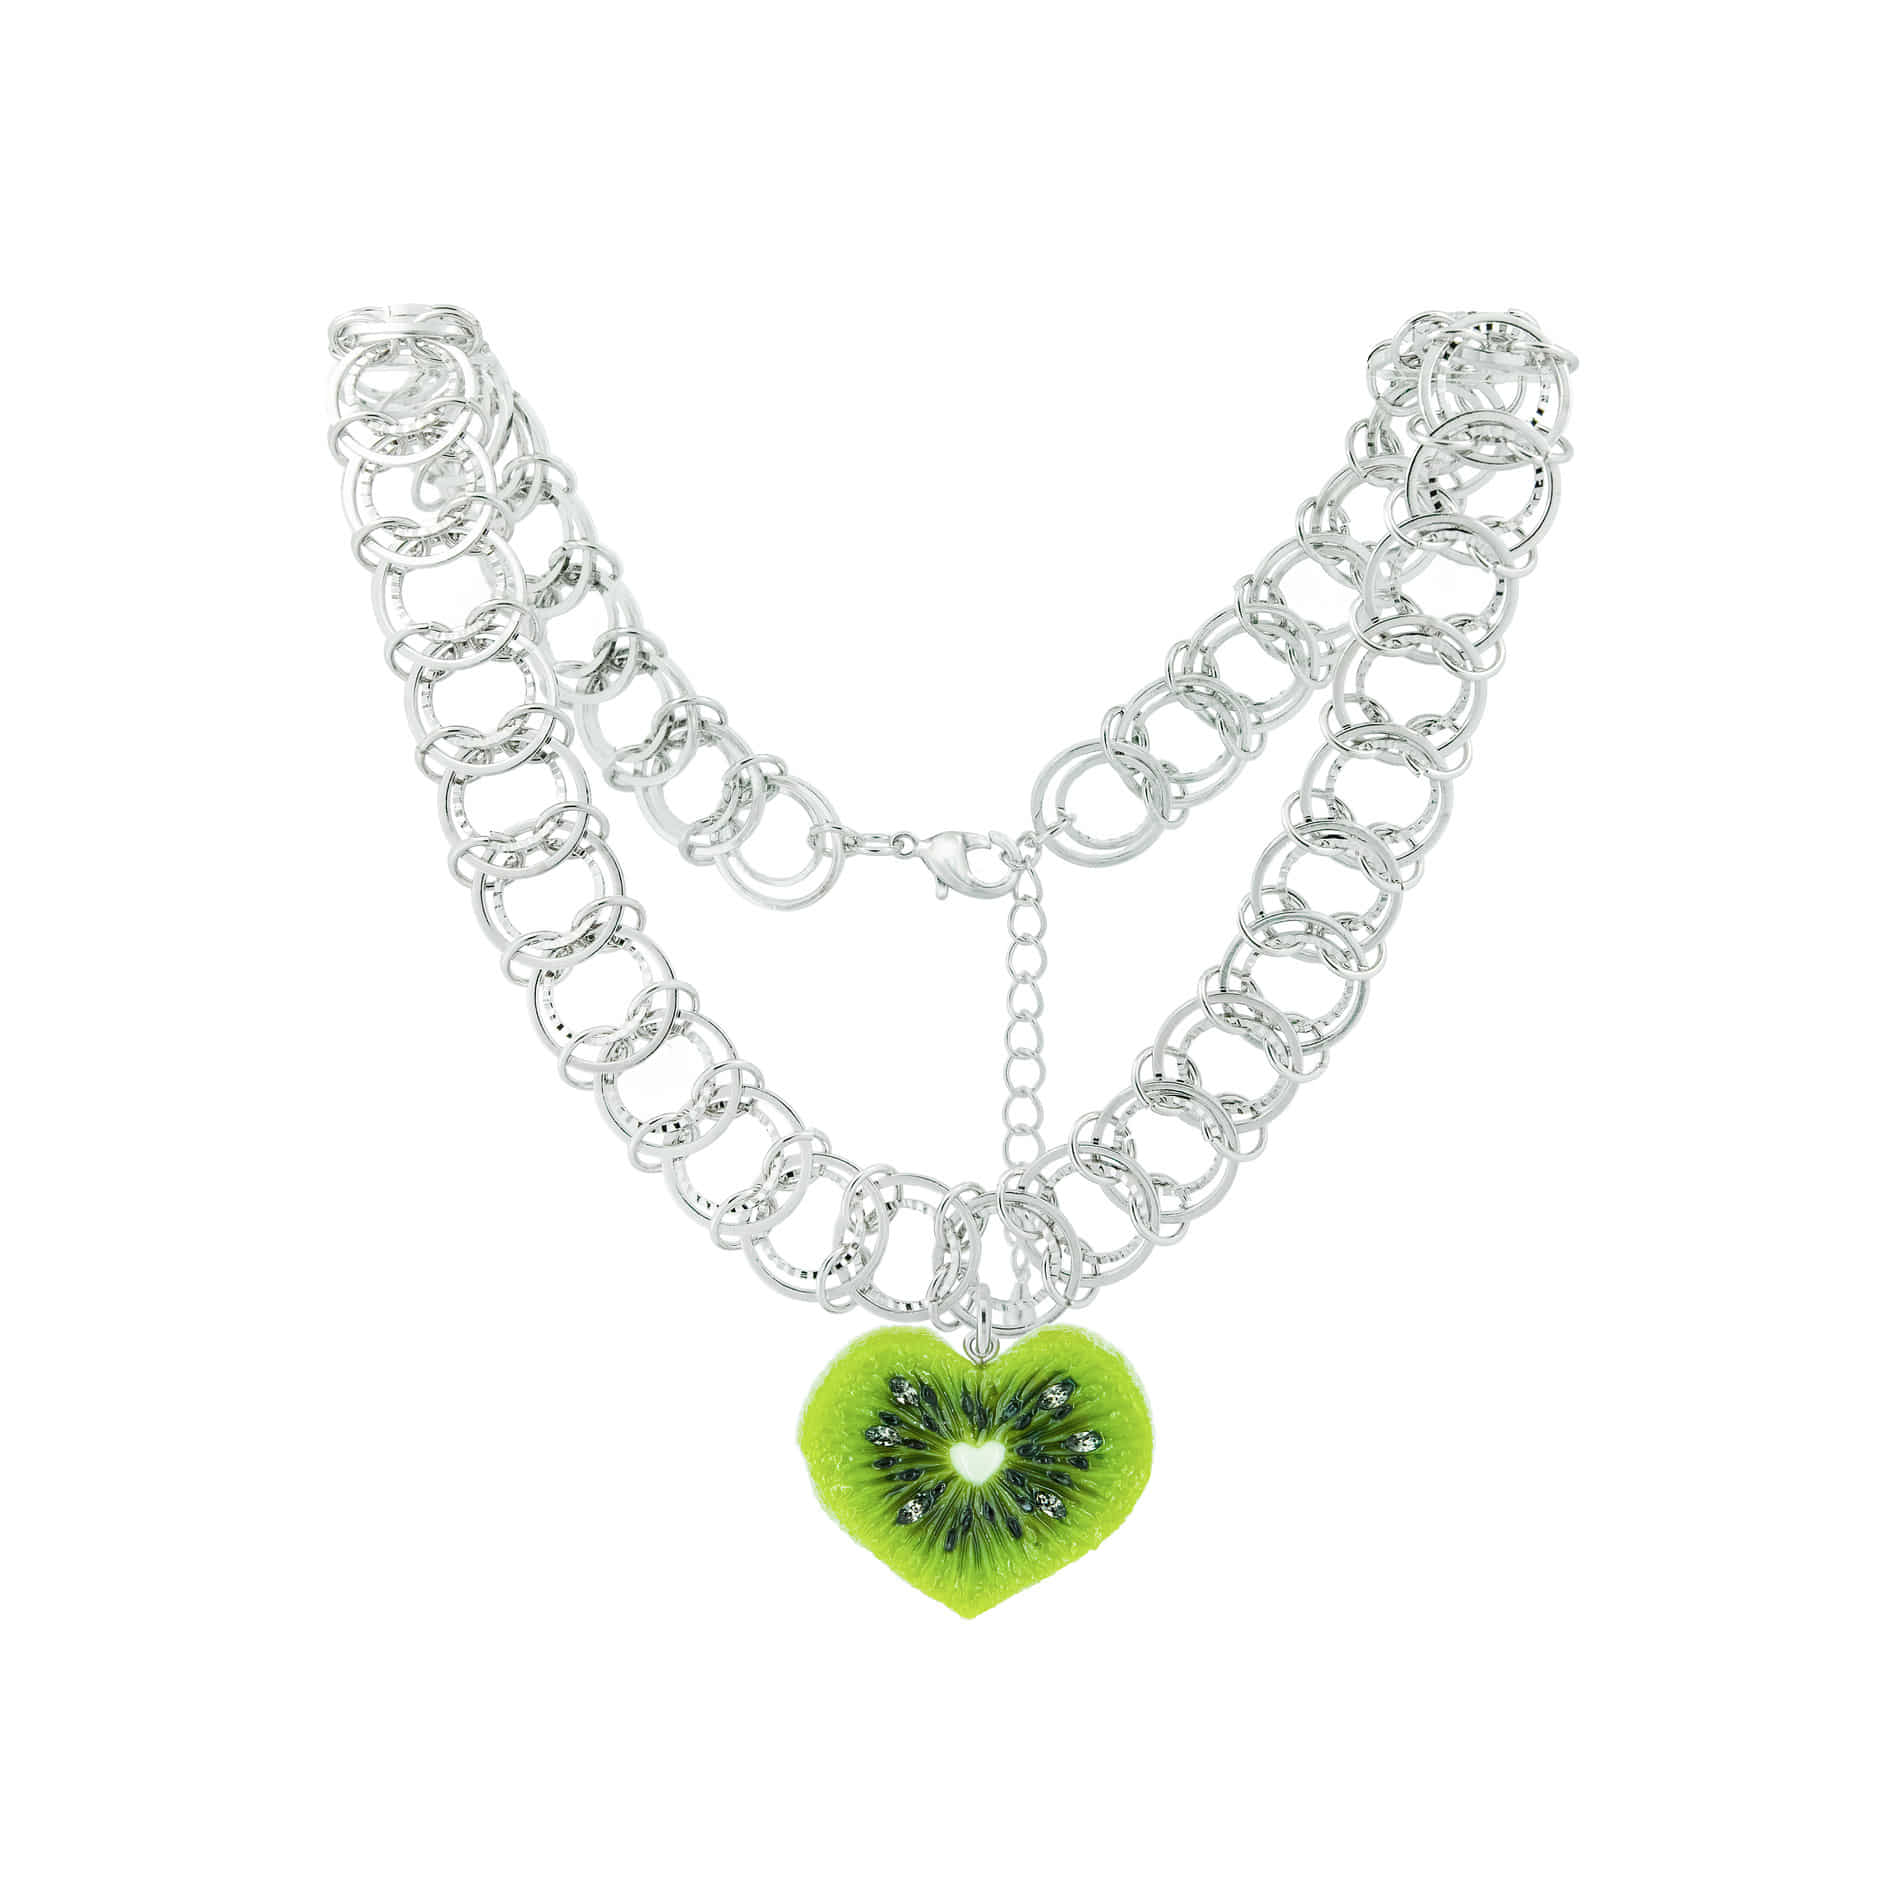 HEART KIWI NECKLACE